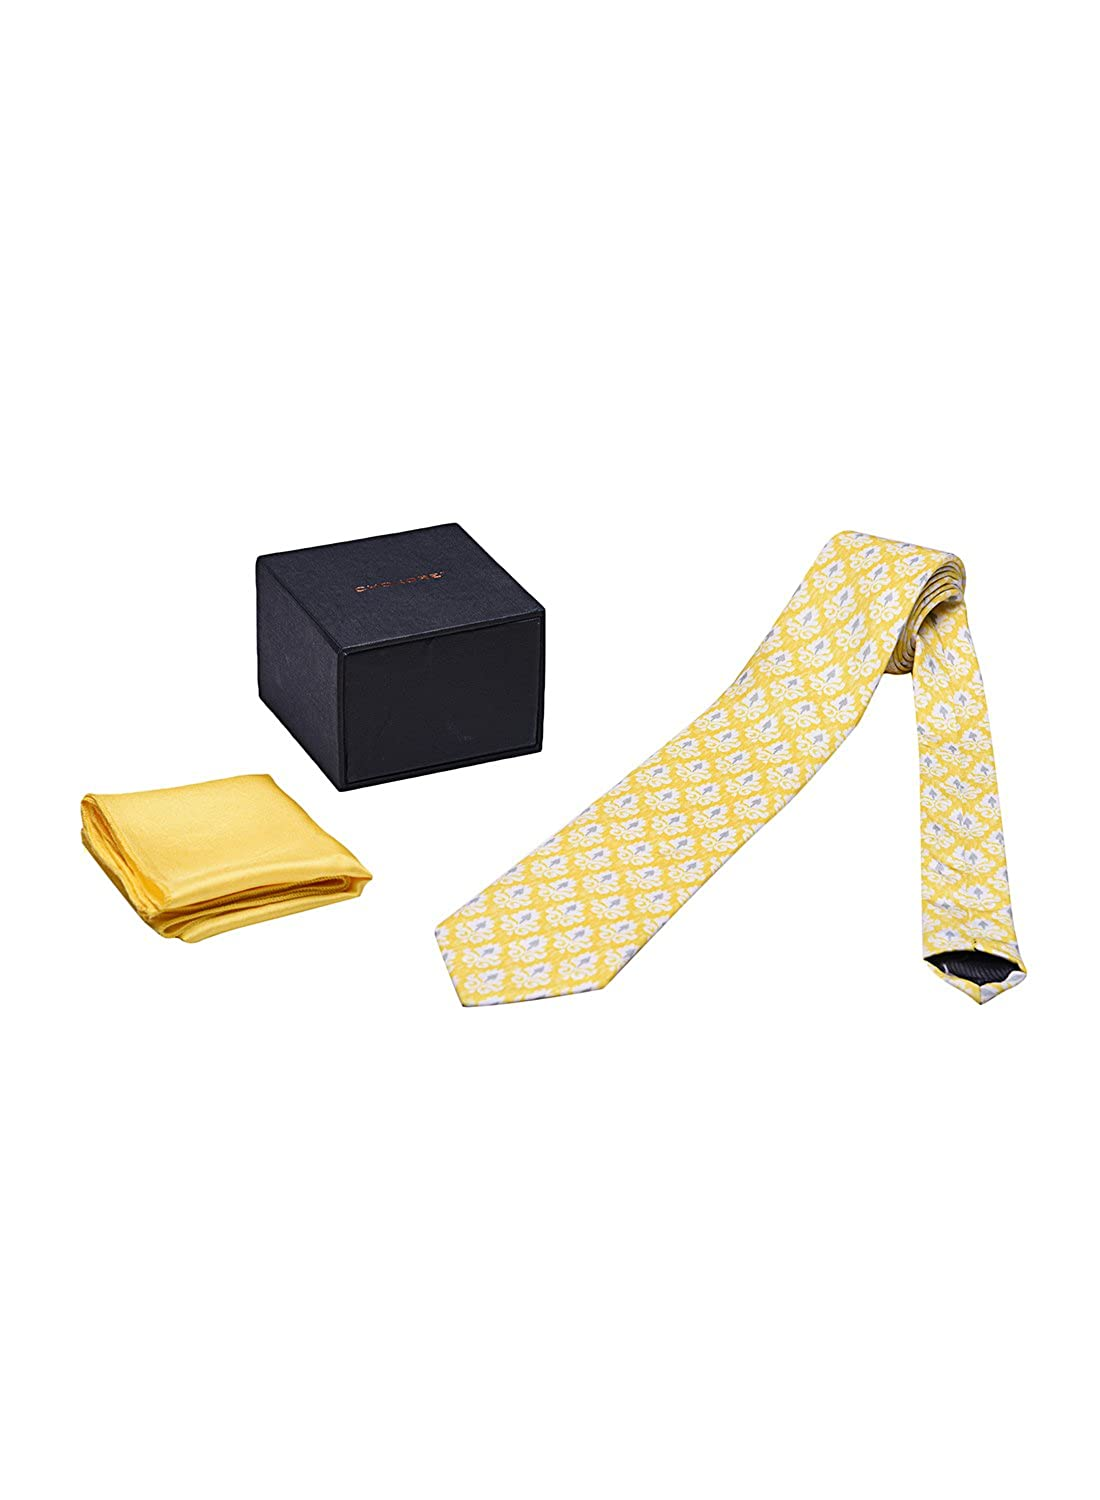 Chokore Lemon-White Silk Tie /& Yellow pocket square set